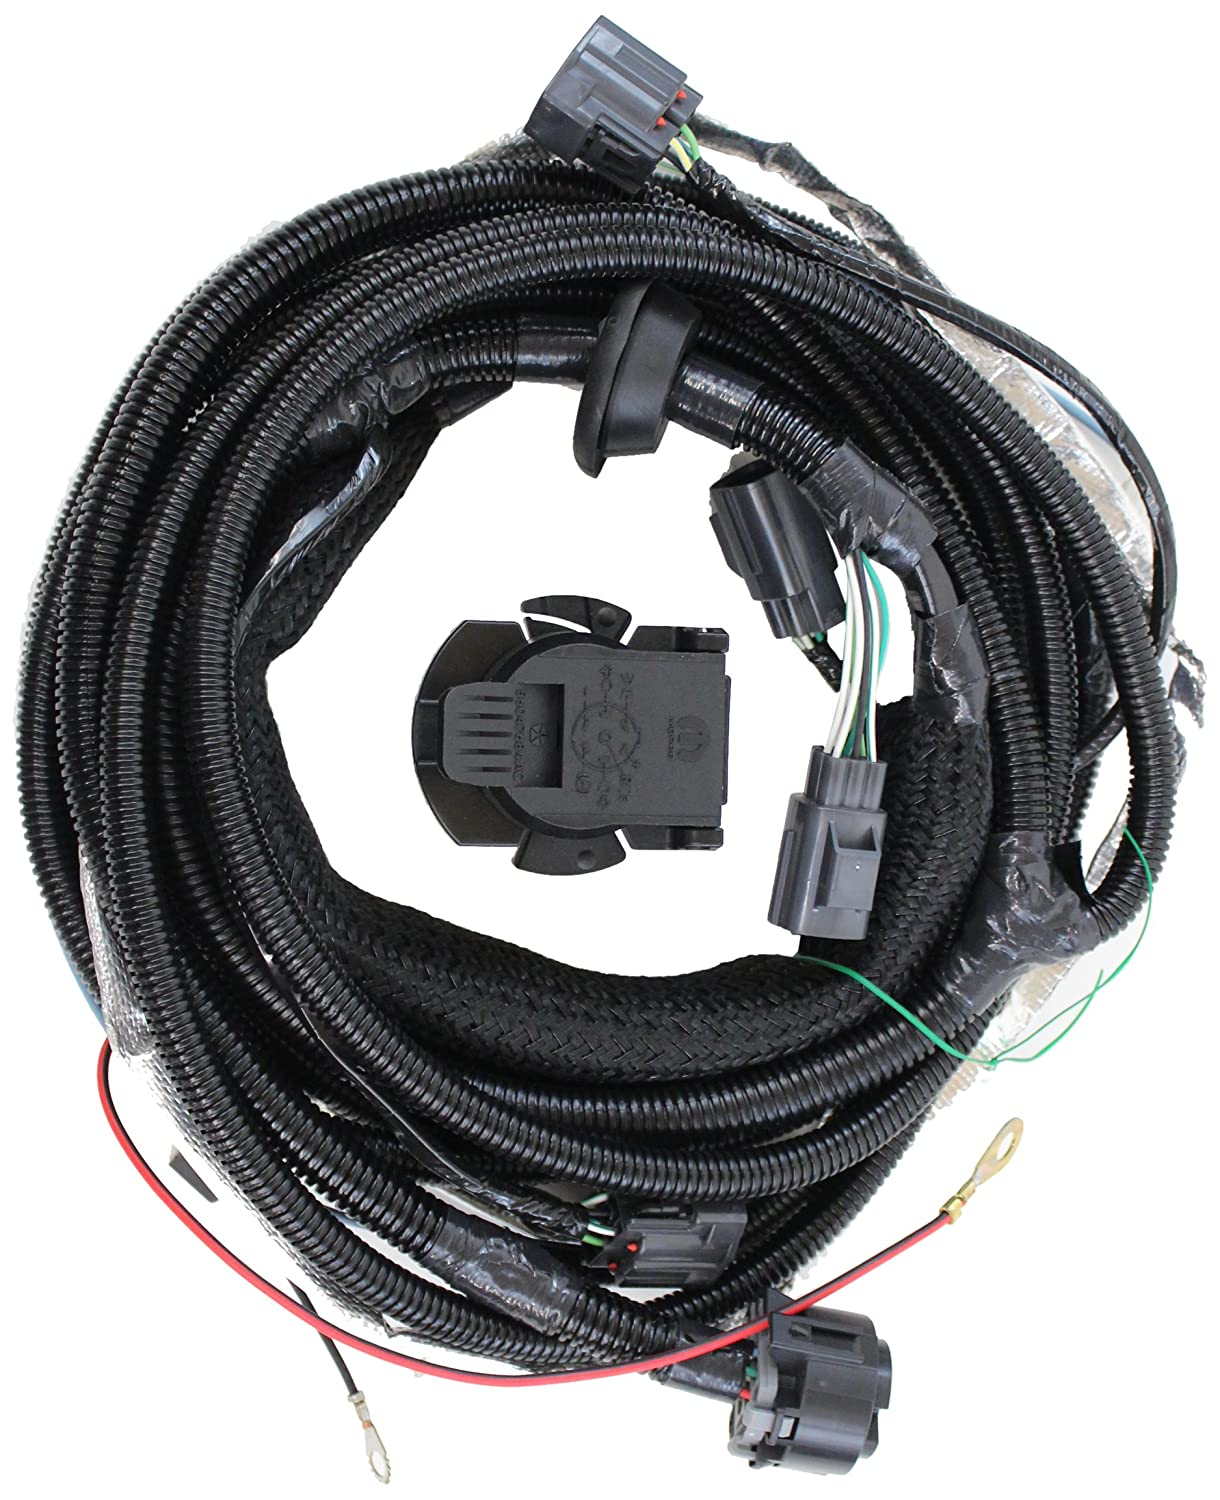 918XganRXOL._SL1500_ amazon com genuine jeep accessories 82210642ad trailer tow wiring trailer tow wiring harness at soozxer.org